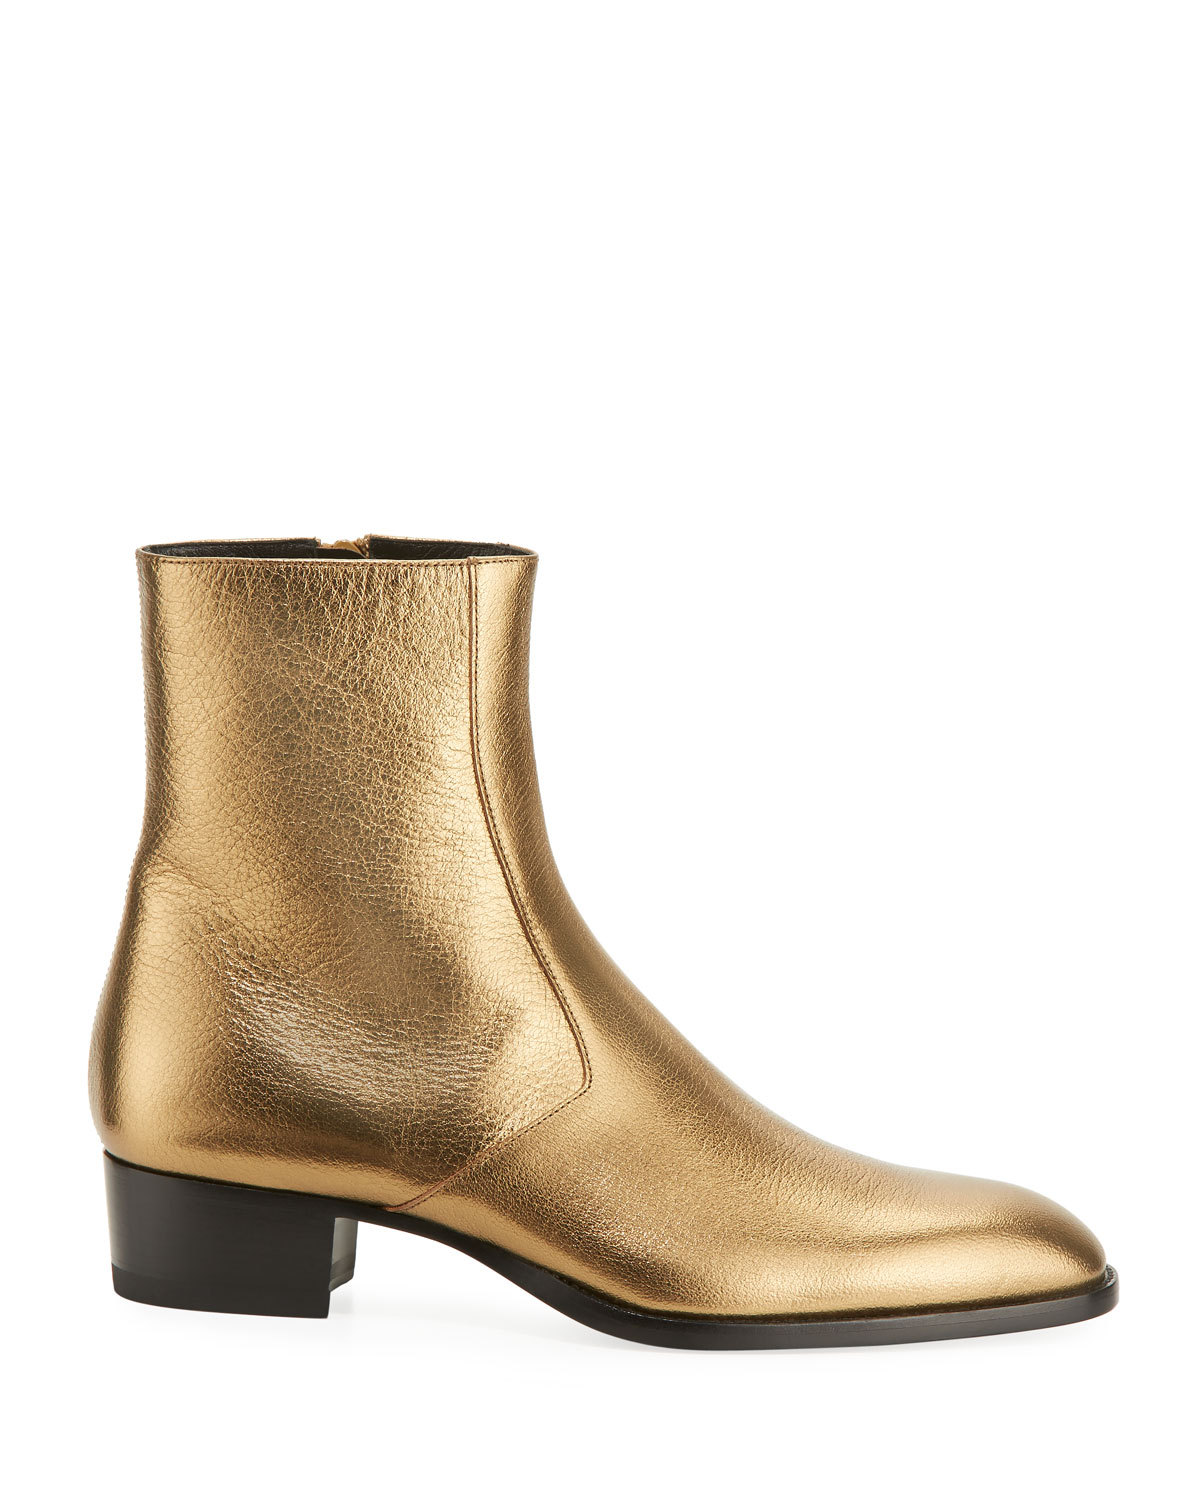 gold ysl boots